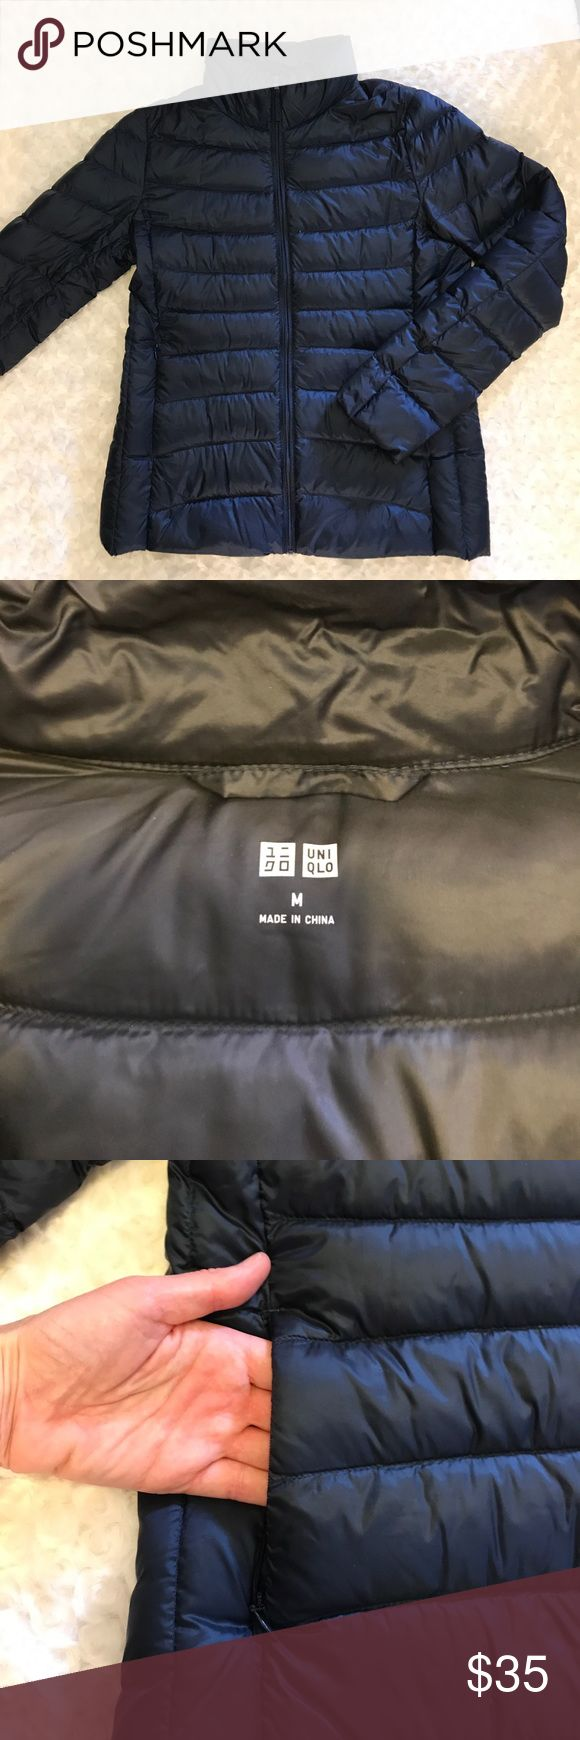 Uniqlo Ultralight Down Jacket Great condition Uniqlo Ultralight Down jacket.  Color navy, size medium.  Zip front, zip side pockets, two large inner pockets.  Size medium.  Few feathers sticking out here and there but that is normal for a Down-fill jacket.  Otherwise great condition and from a smoke-free home.  Rolls up so tiny, takes up hardly any room if you're packing it... you could even fit inside a small purse.  I've loved it and you will too! Uniqlo Jackets & Coats Puffers